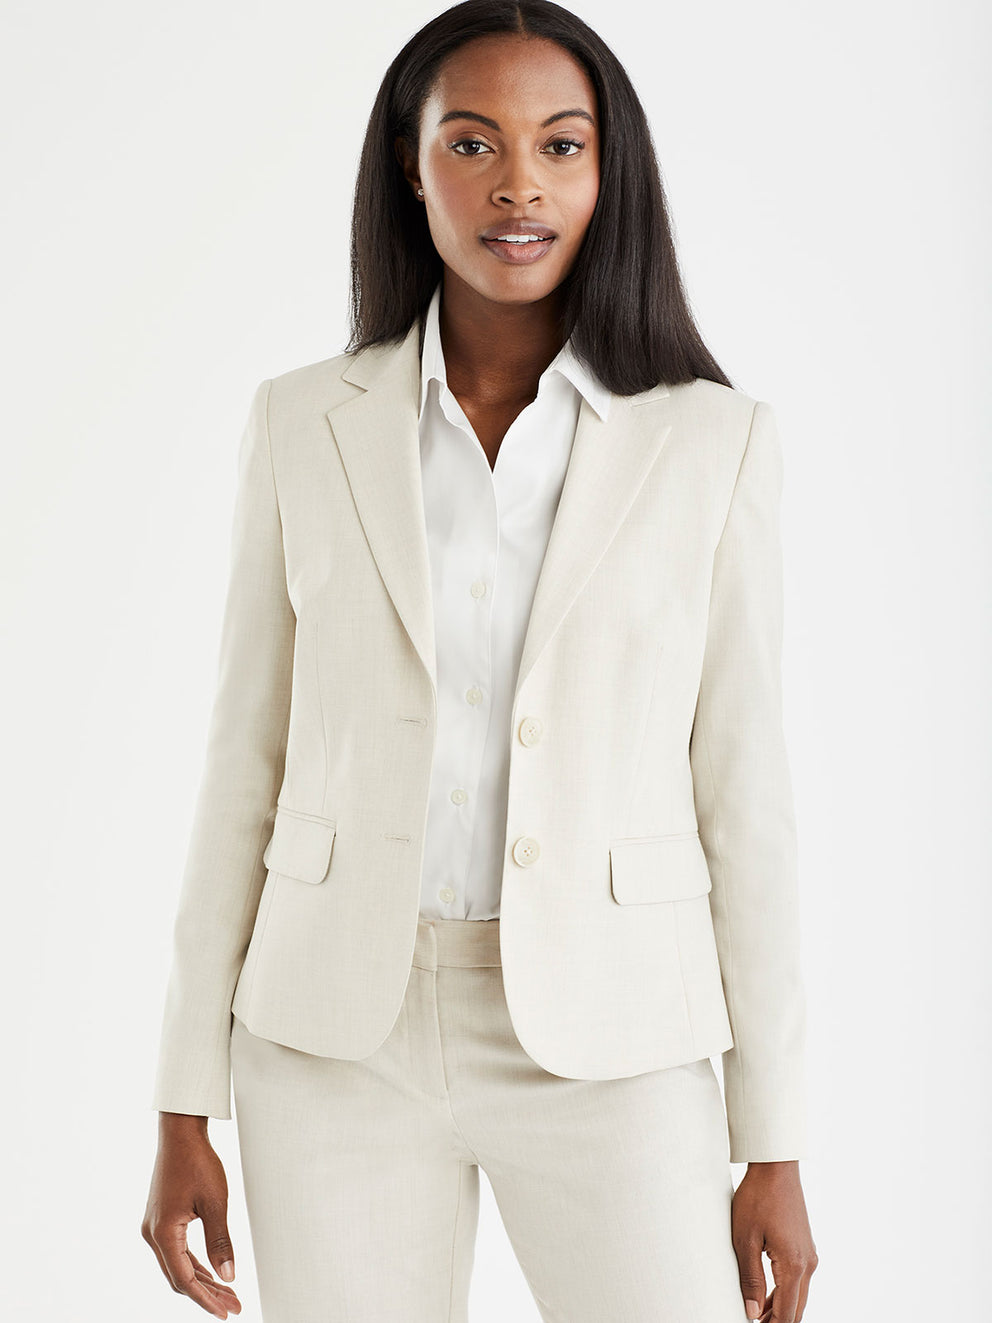 The Jones New York Washable Cropped Two-Button Jacket in color Stone - Image Position 1